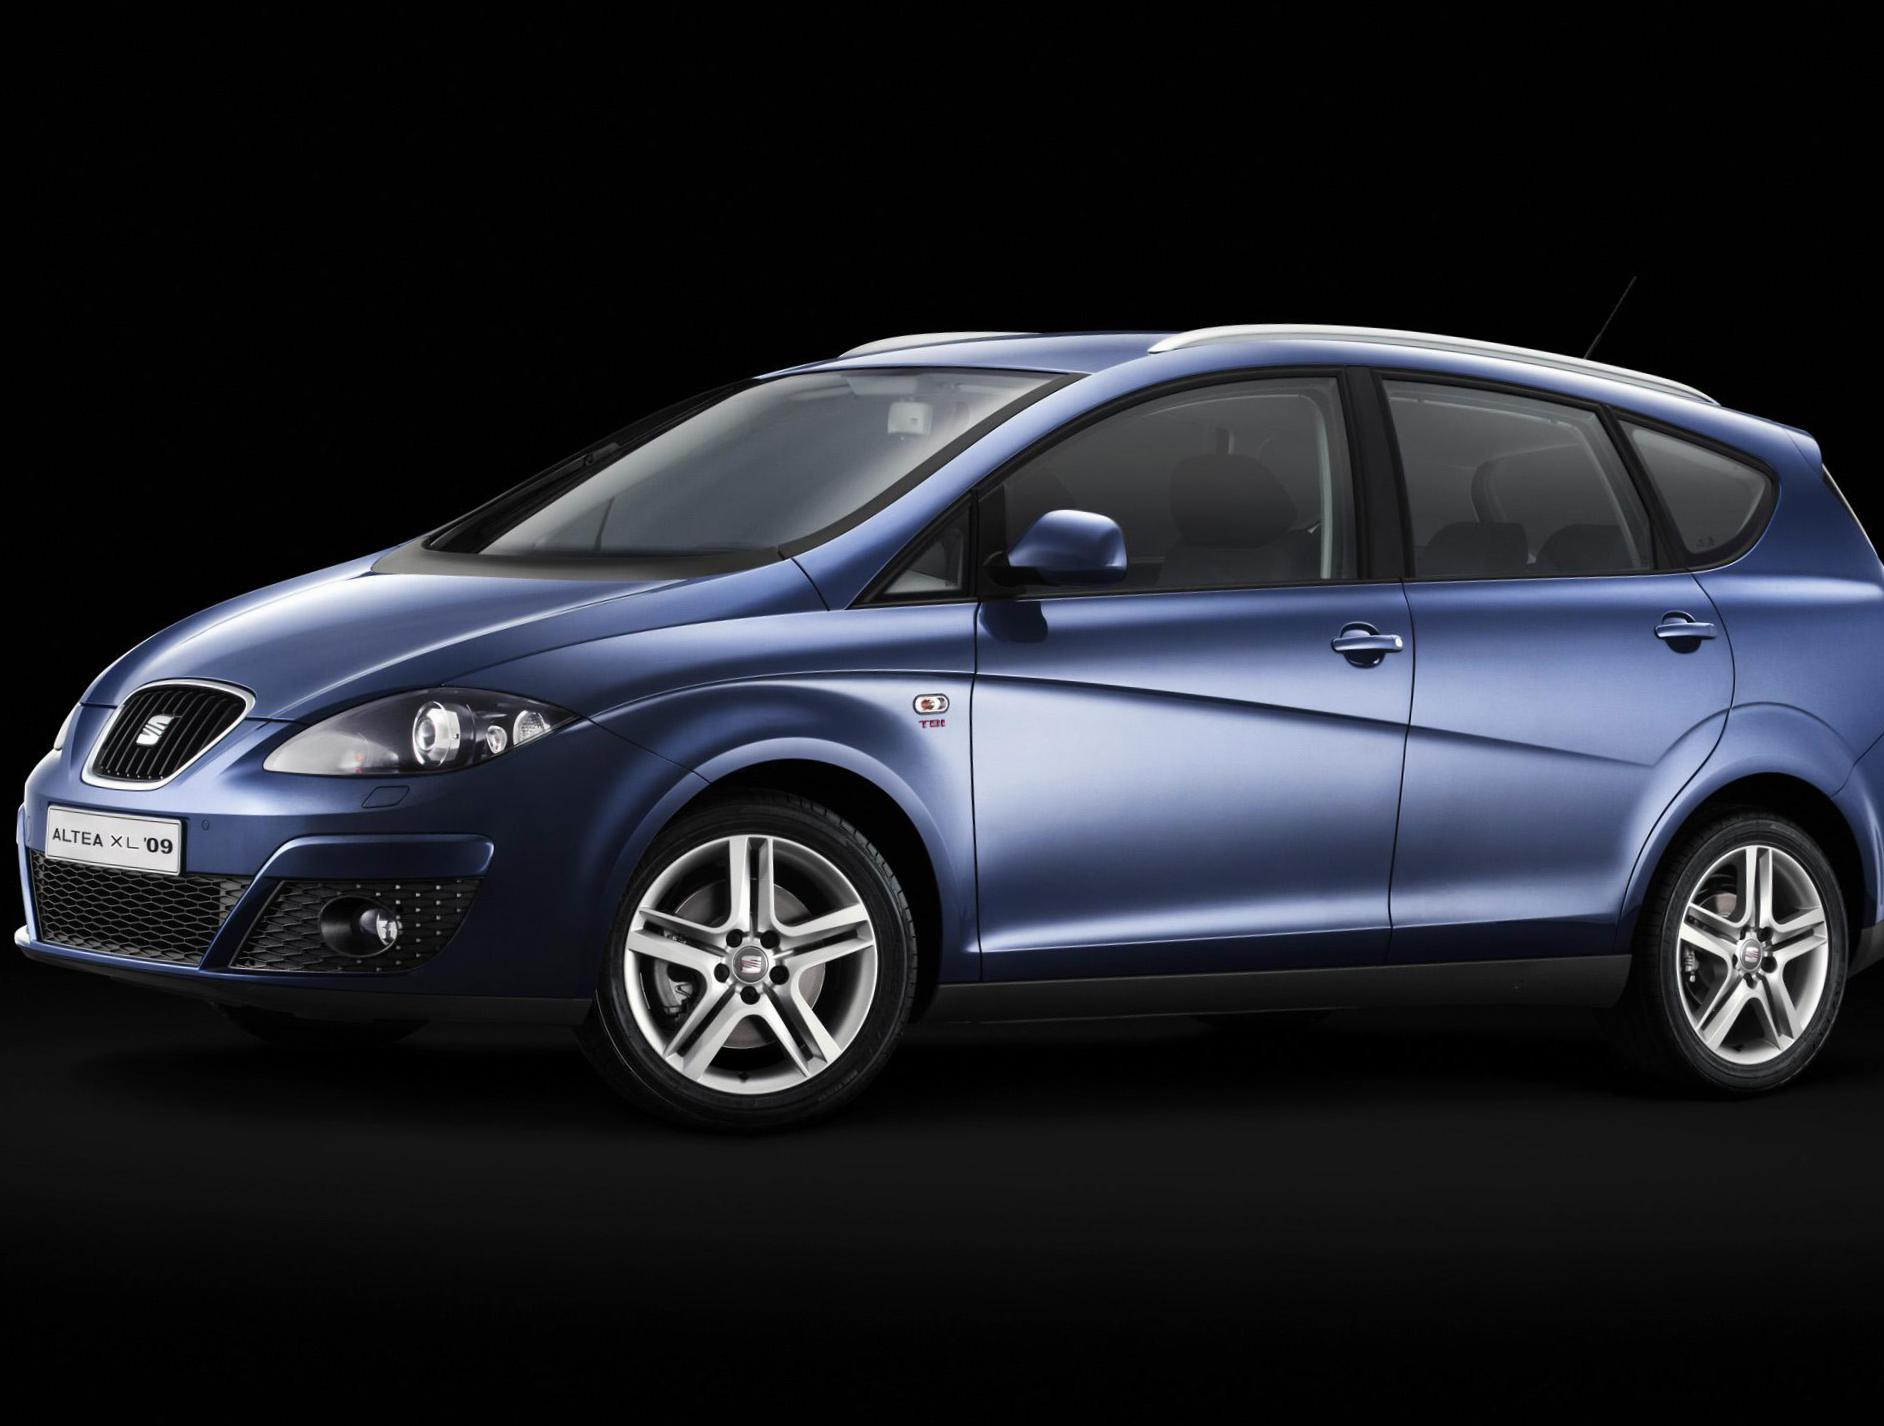 Altea XL Seat approved hatchback